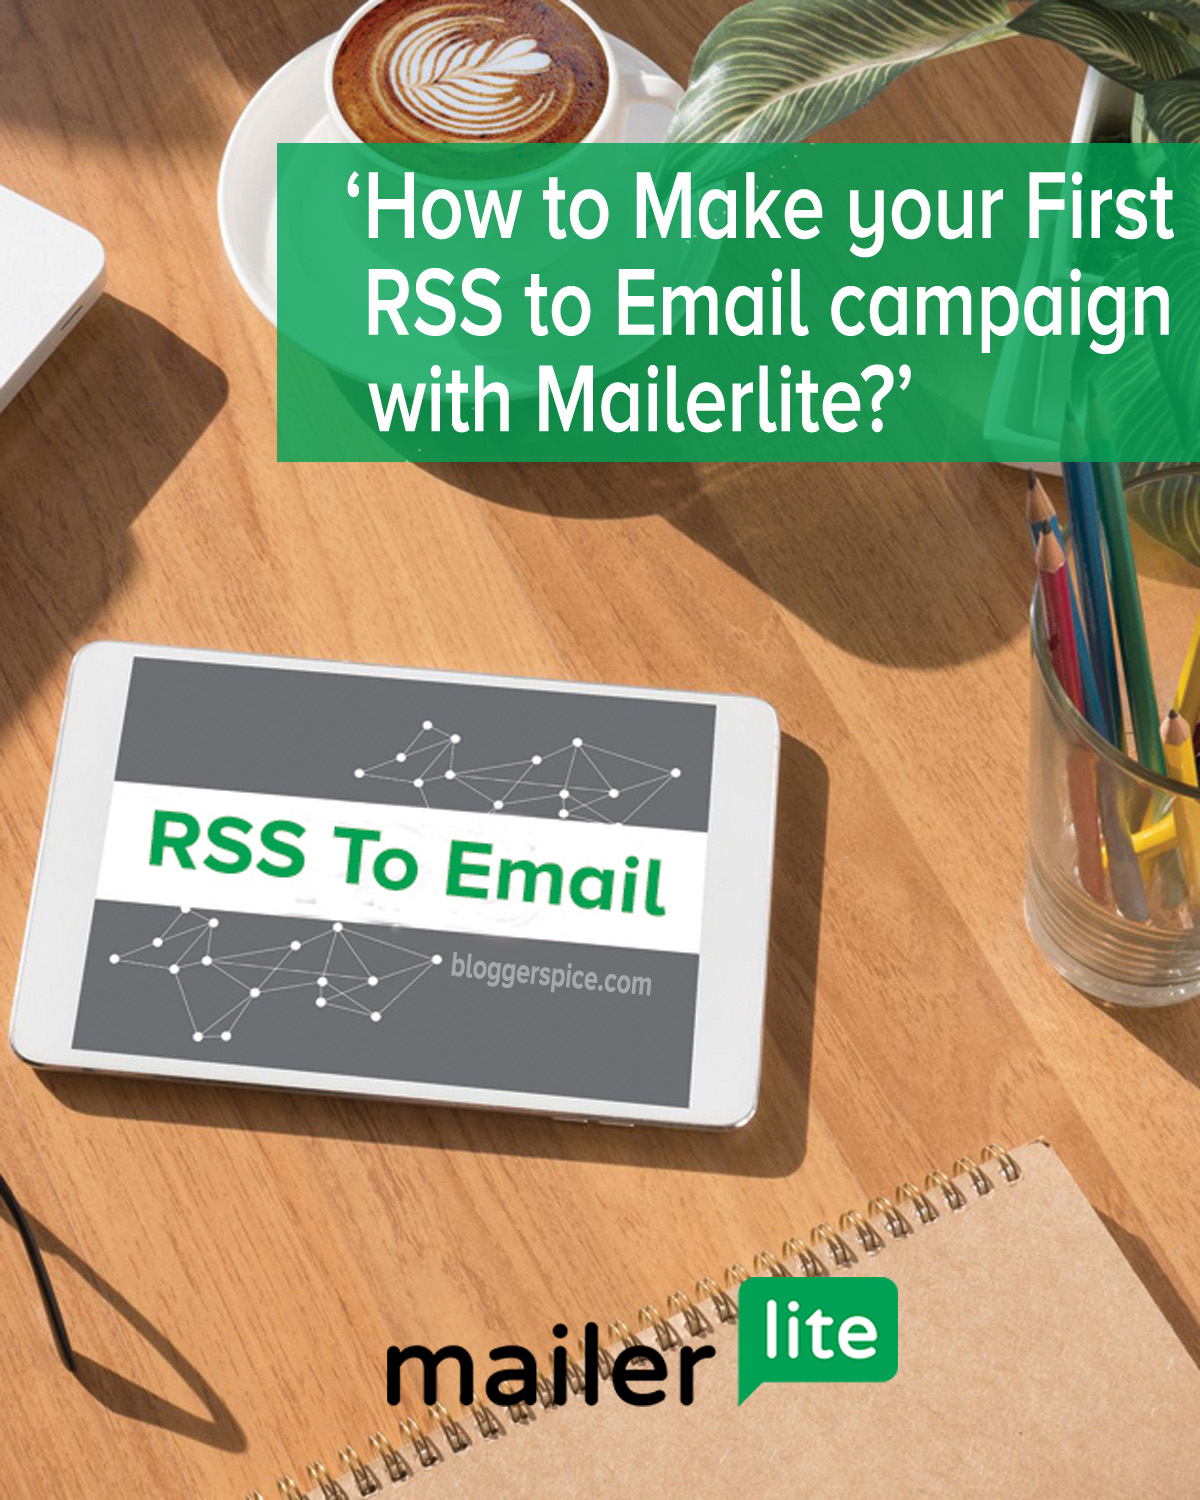 create your RSS campaign in MailerLite newsletter service